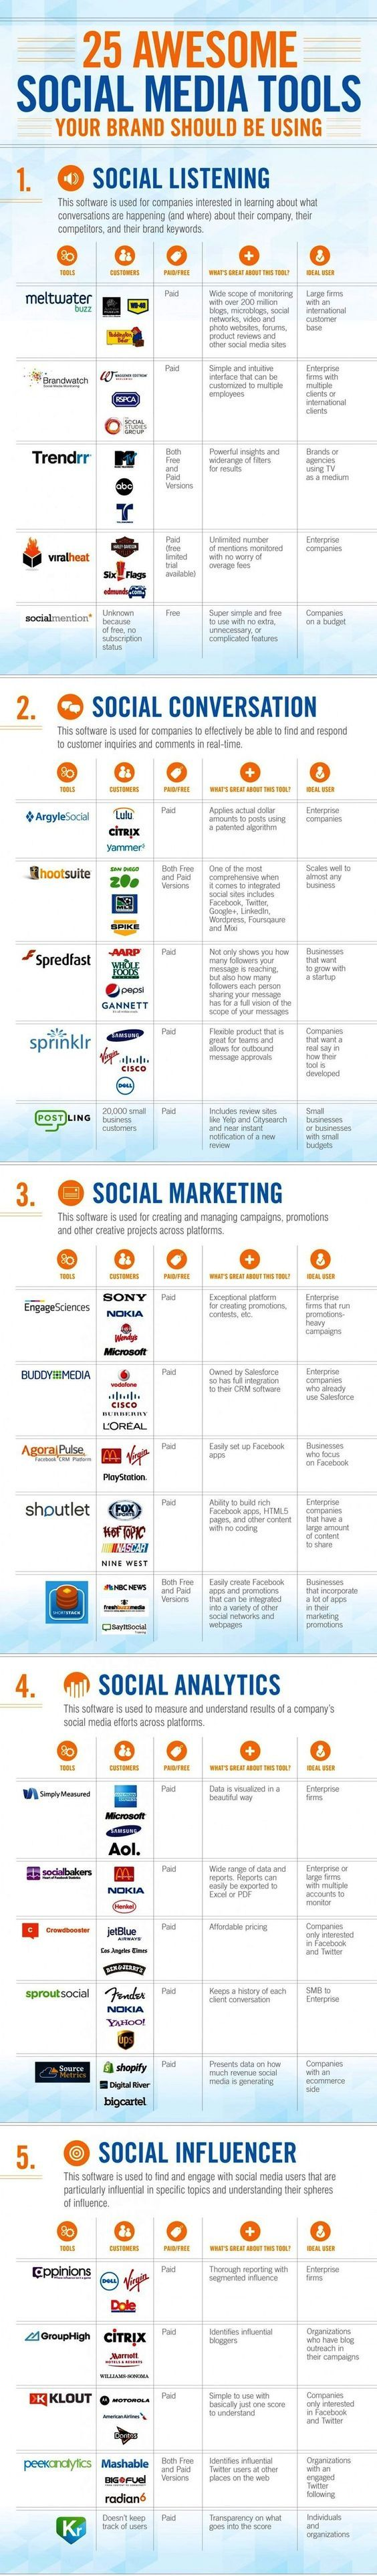 Consider these suggested 25 #SocialMedia #Enablers